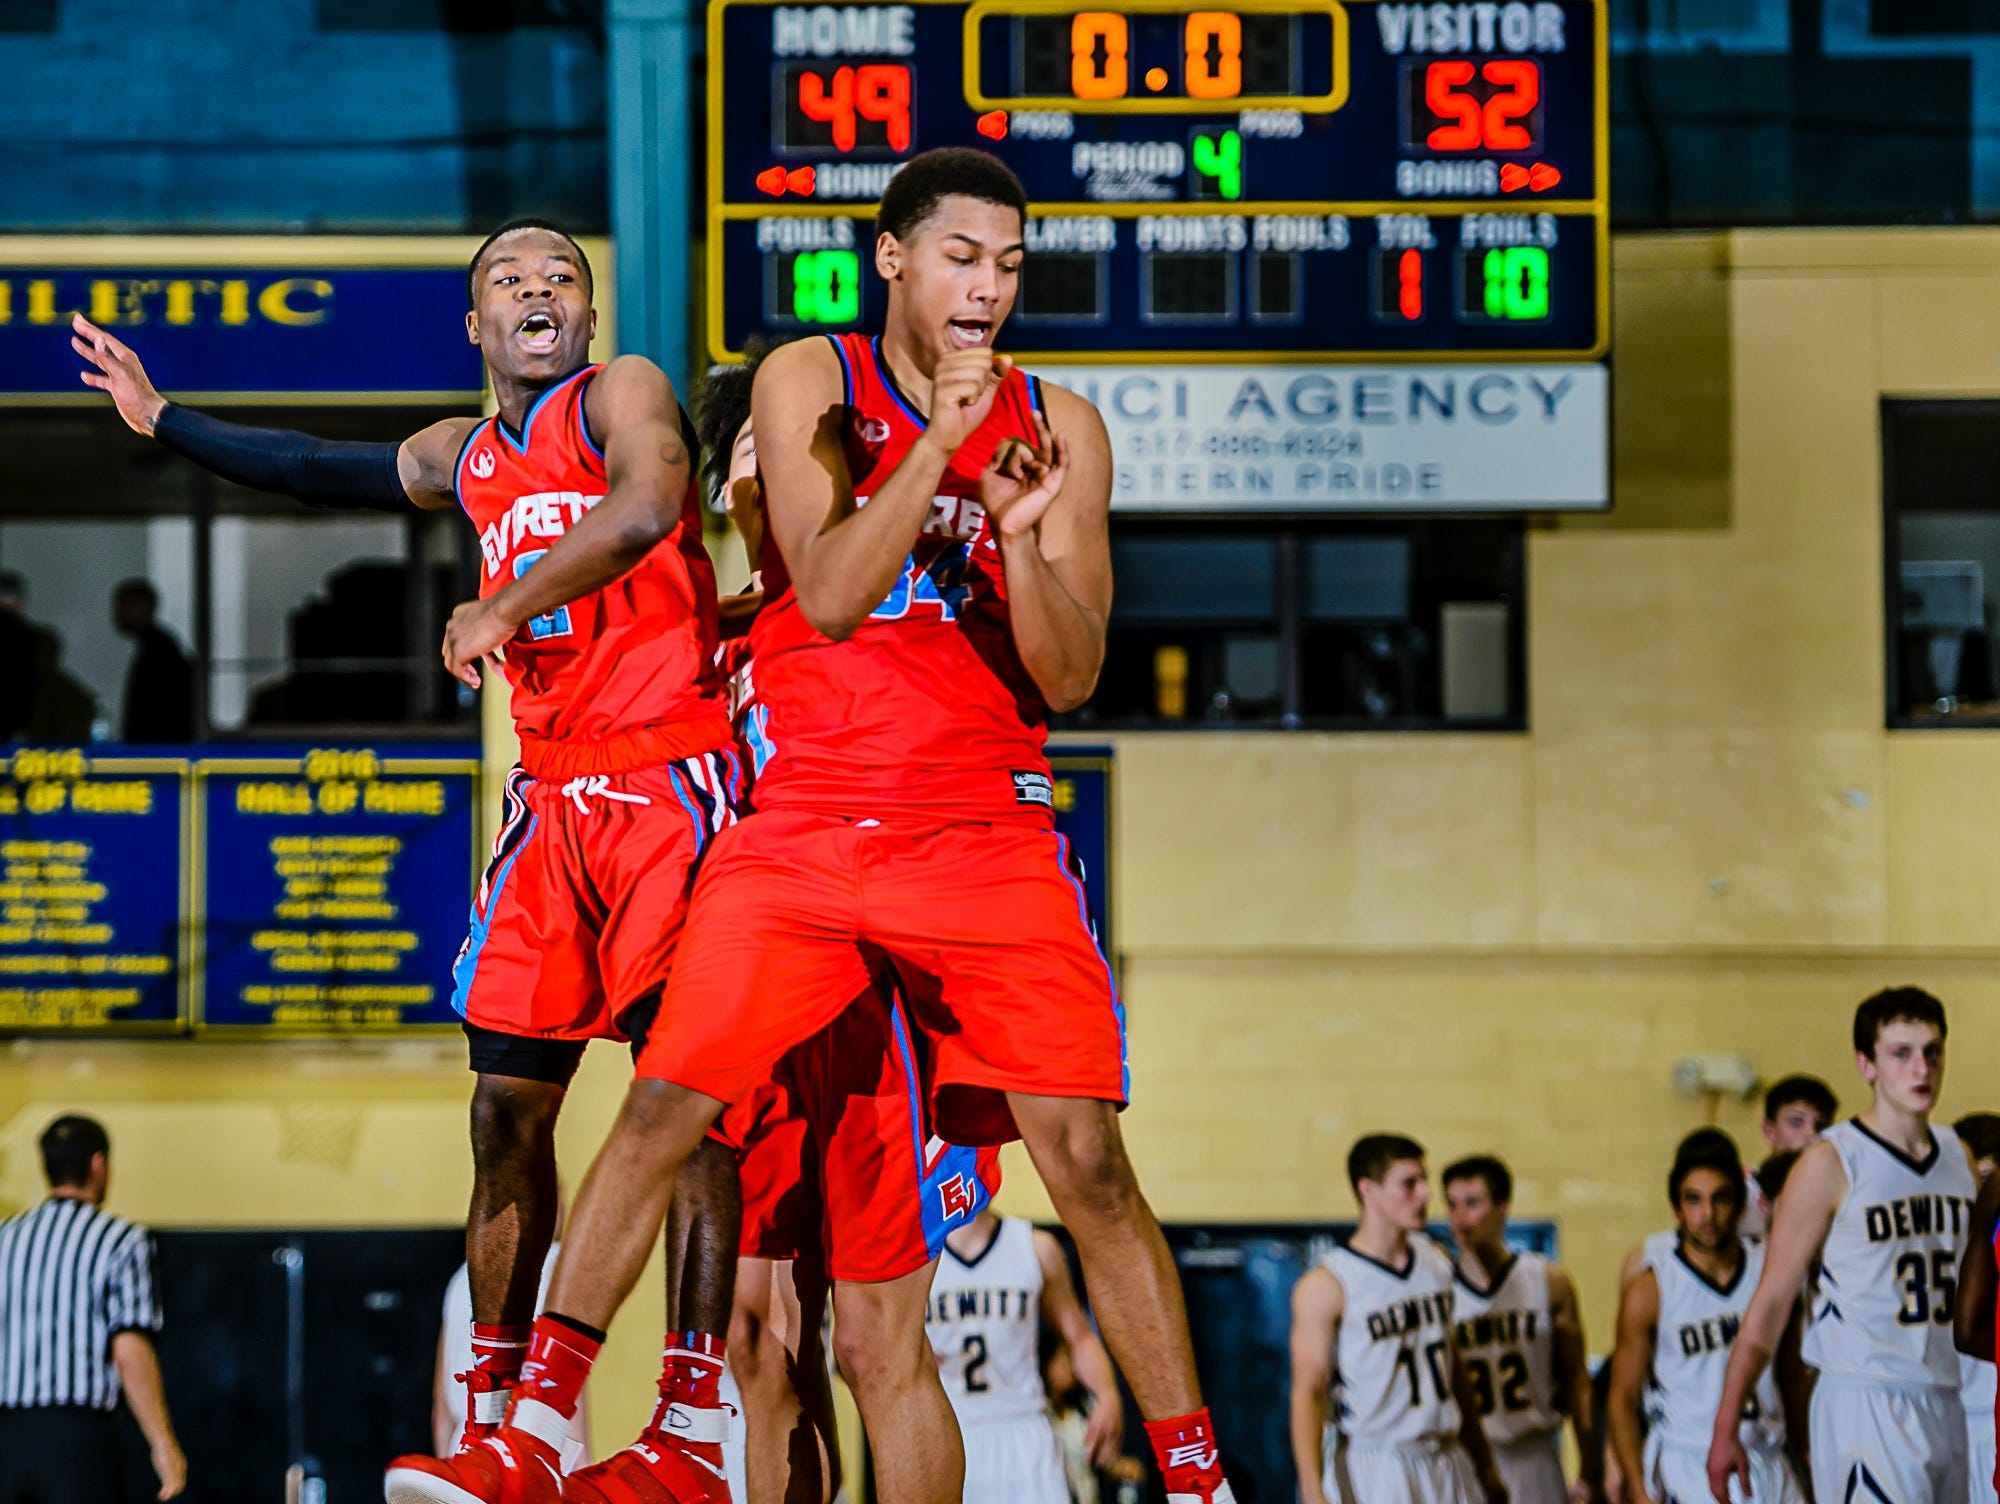 Nyreel Powell ,left, of Everett and teammate Diego Robinson celebrate after their Class A district semifinal win over DeWitt Wednesday March 8, 2017 at Don Johnson Fieldhouse in Lansing.